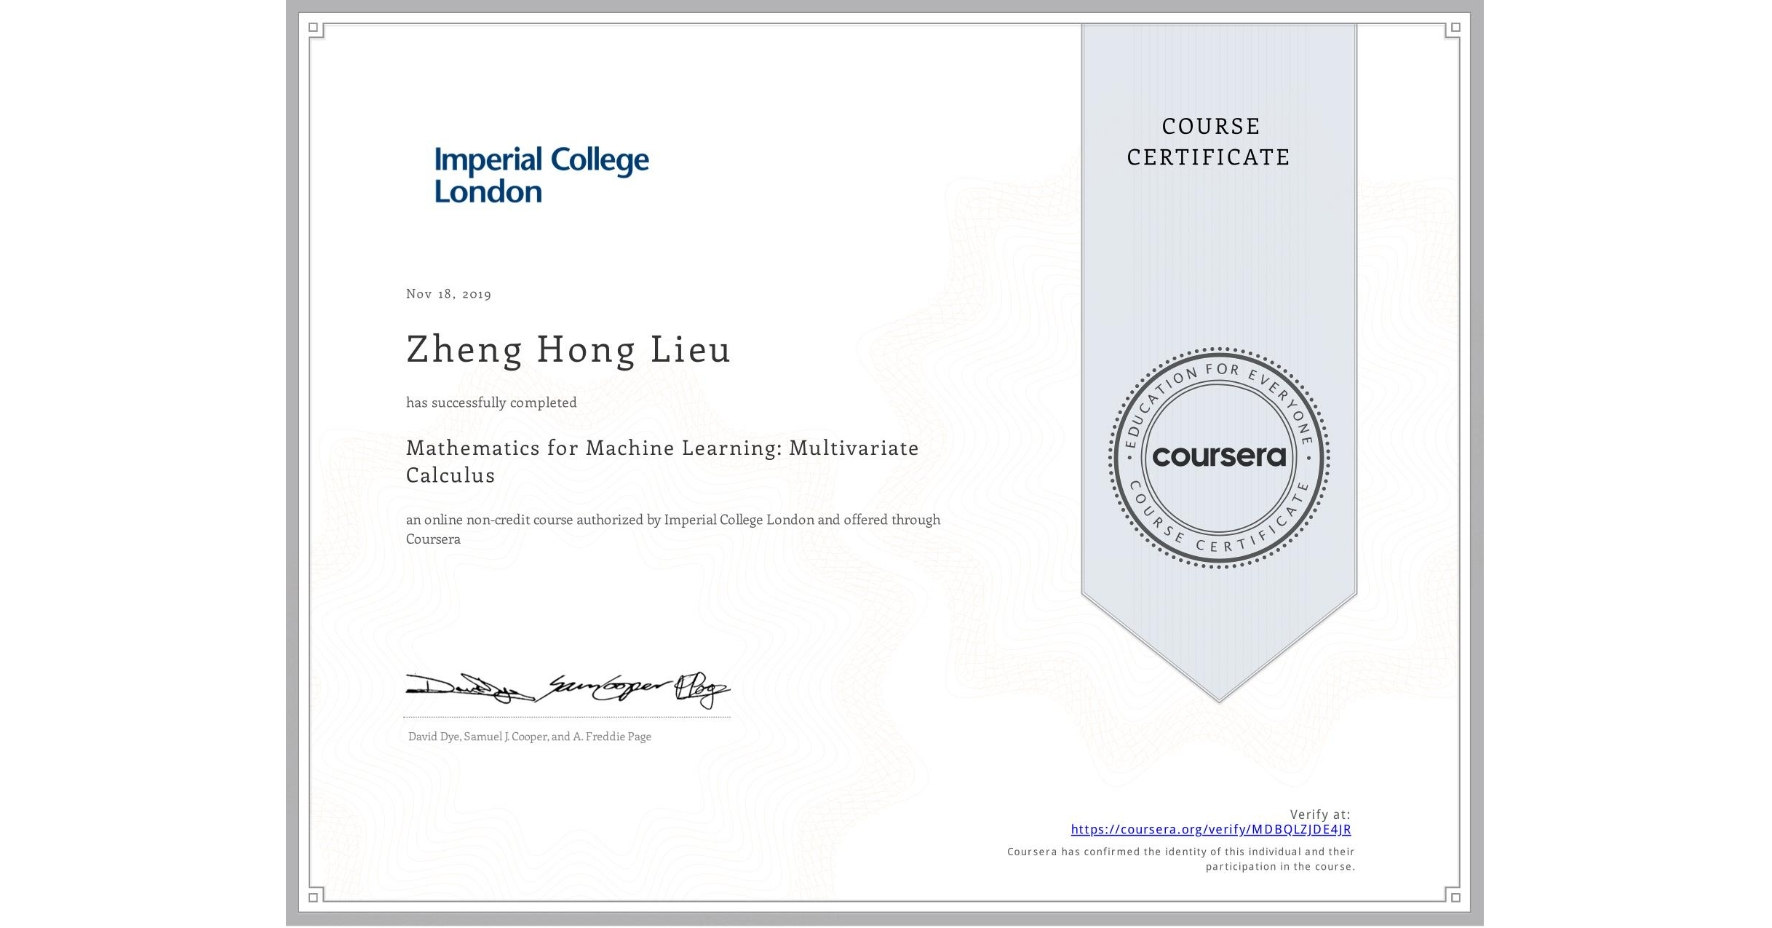 View certificate for Zheng Hong  Lieu, Mathematics for Machine Learning: Multivariate Calculus, an online non-credit course authorized by Imperial College London and offered through Coursera